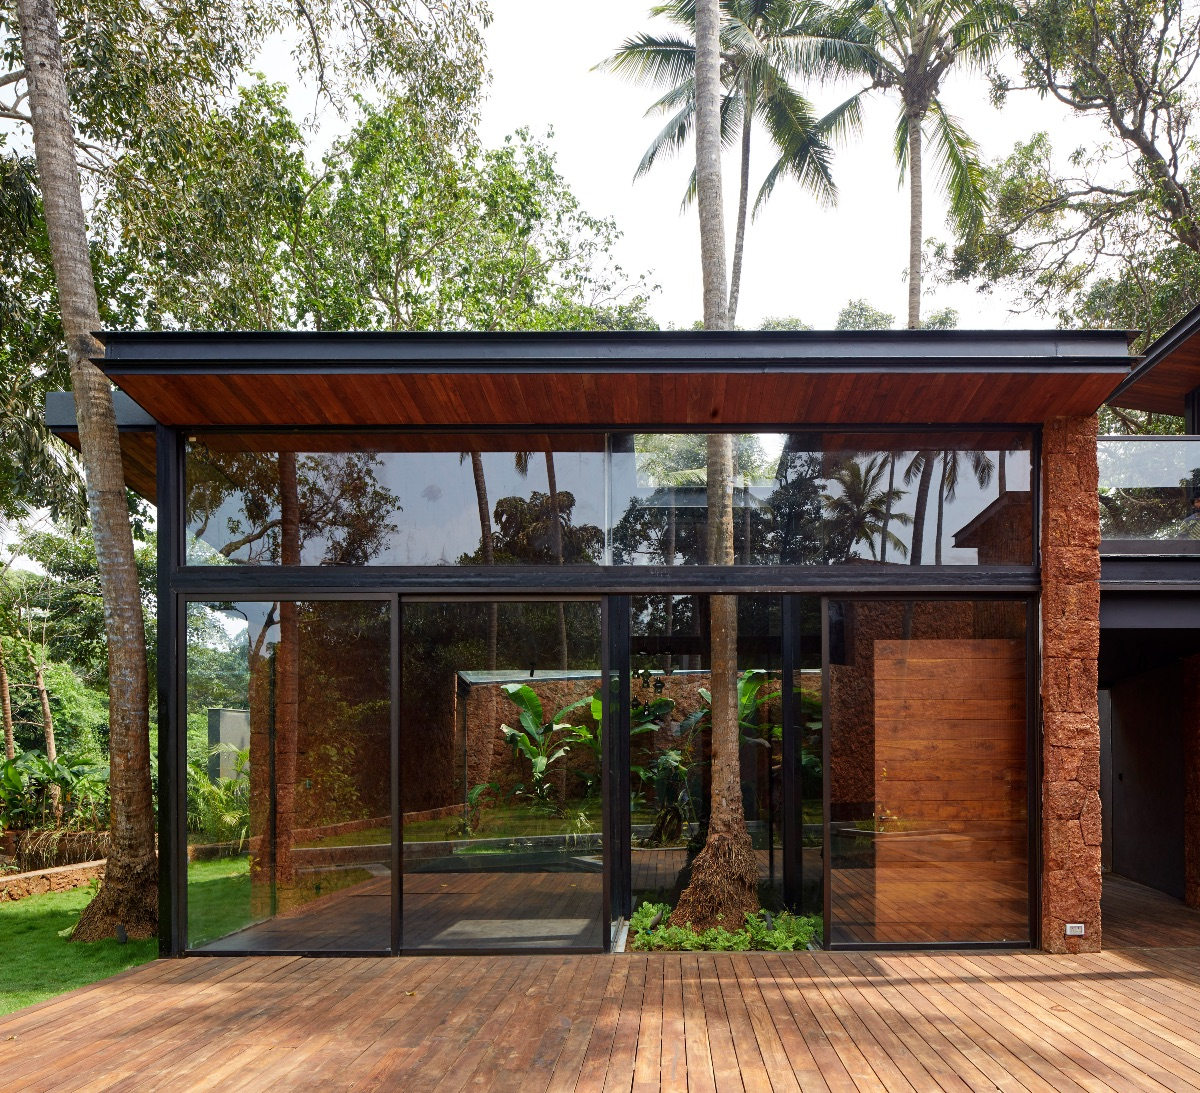 11_Villa in the Palms_Abraham John Architects_Inspirationist